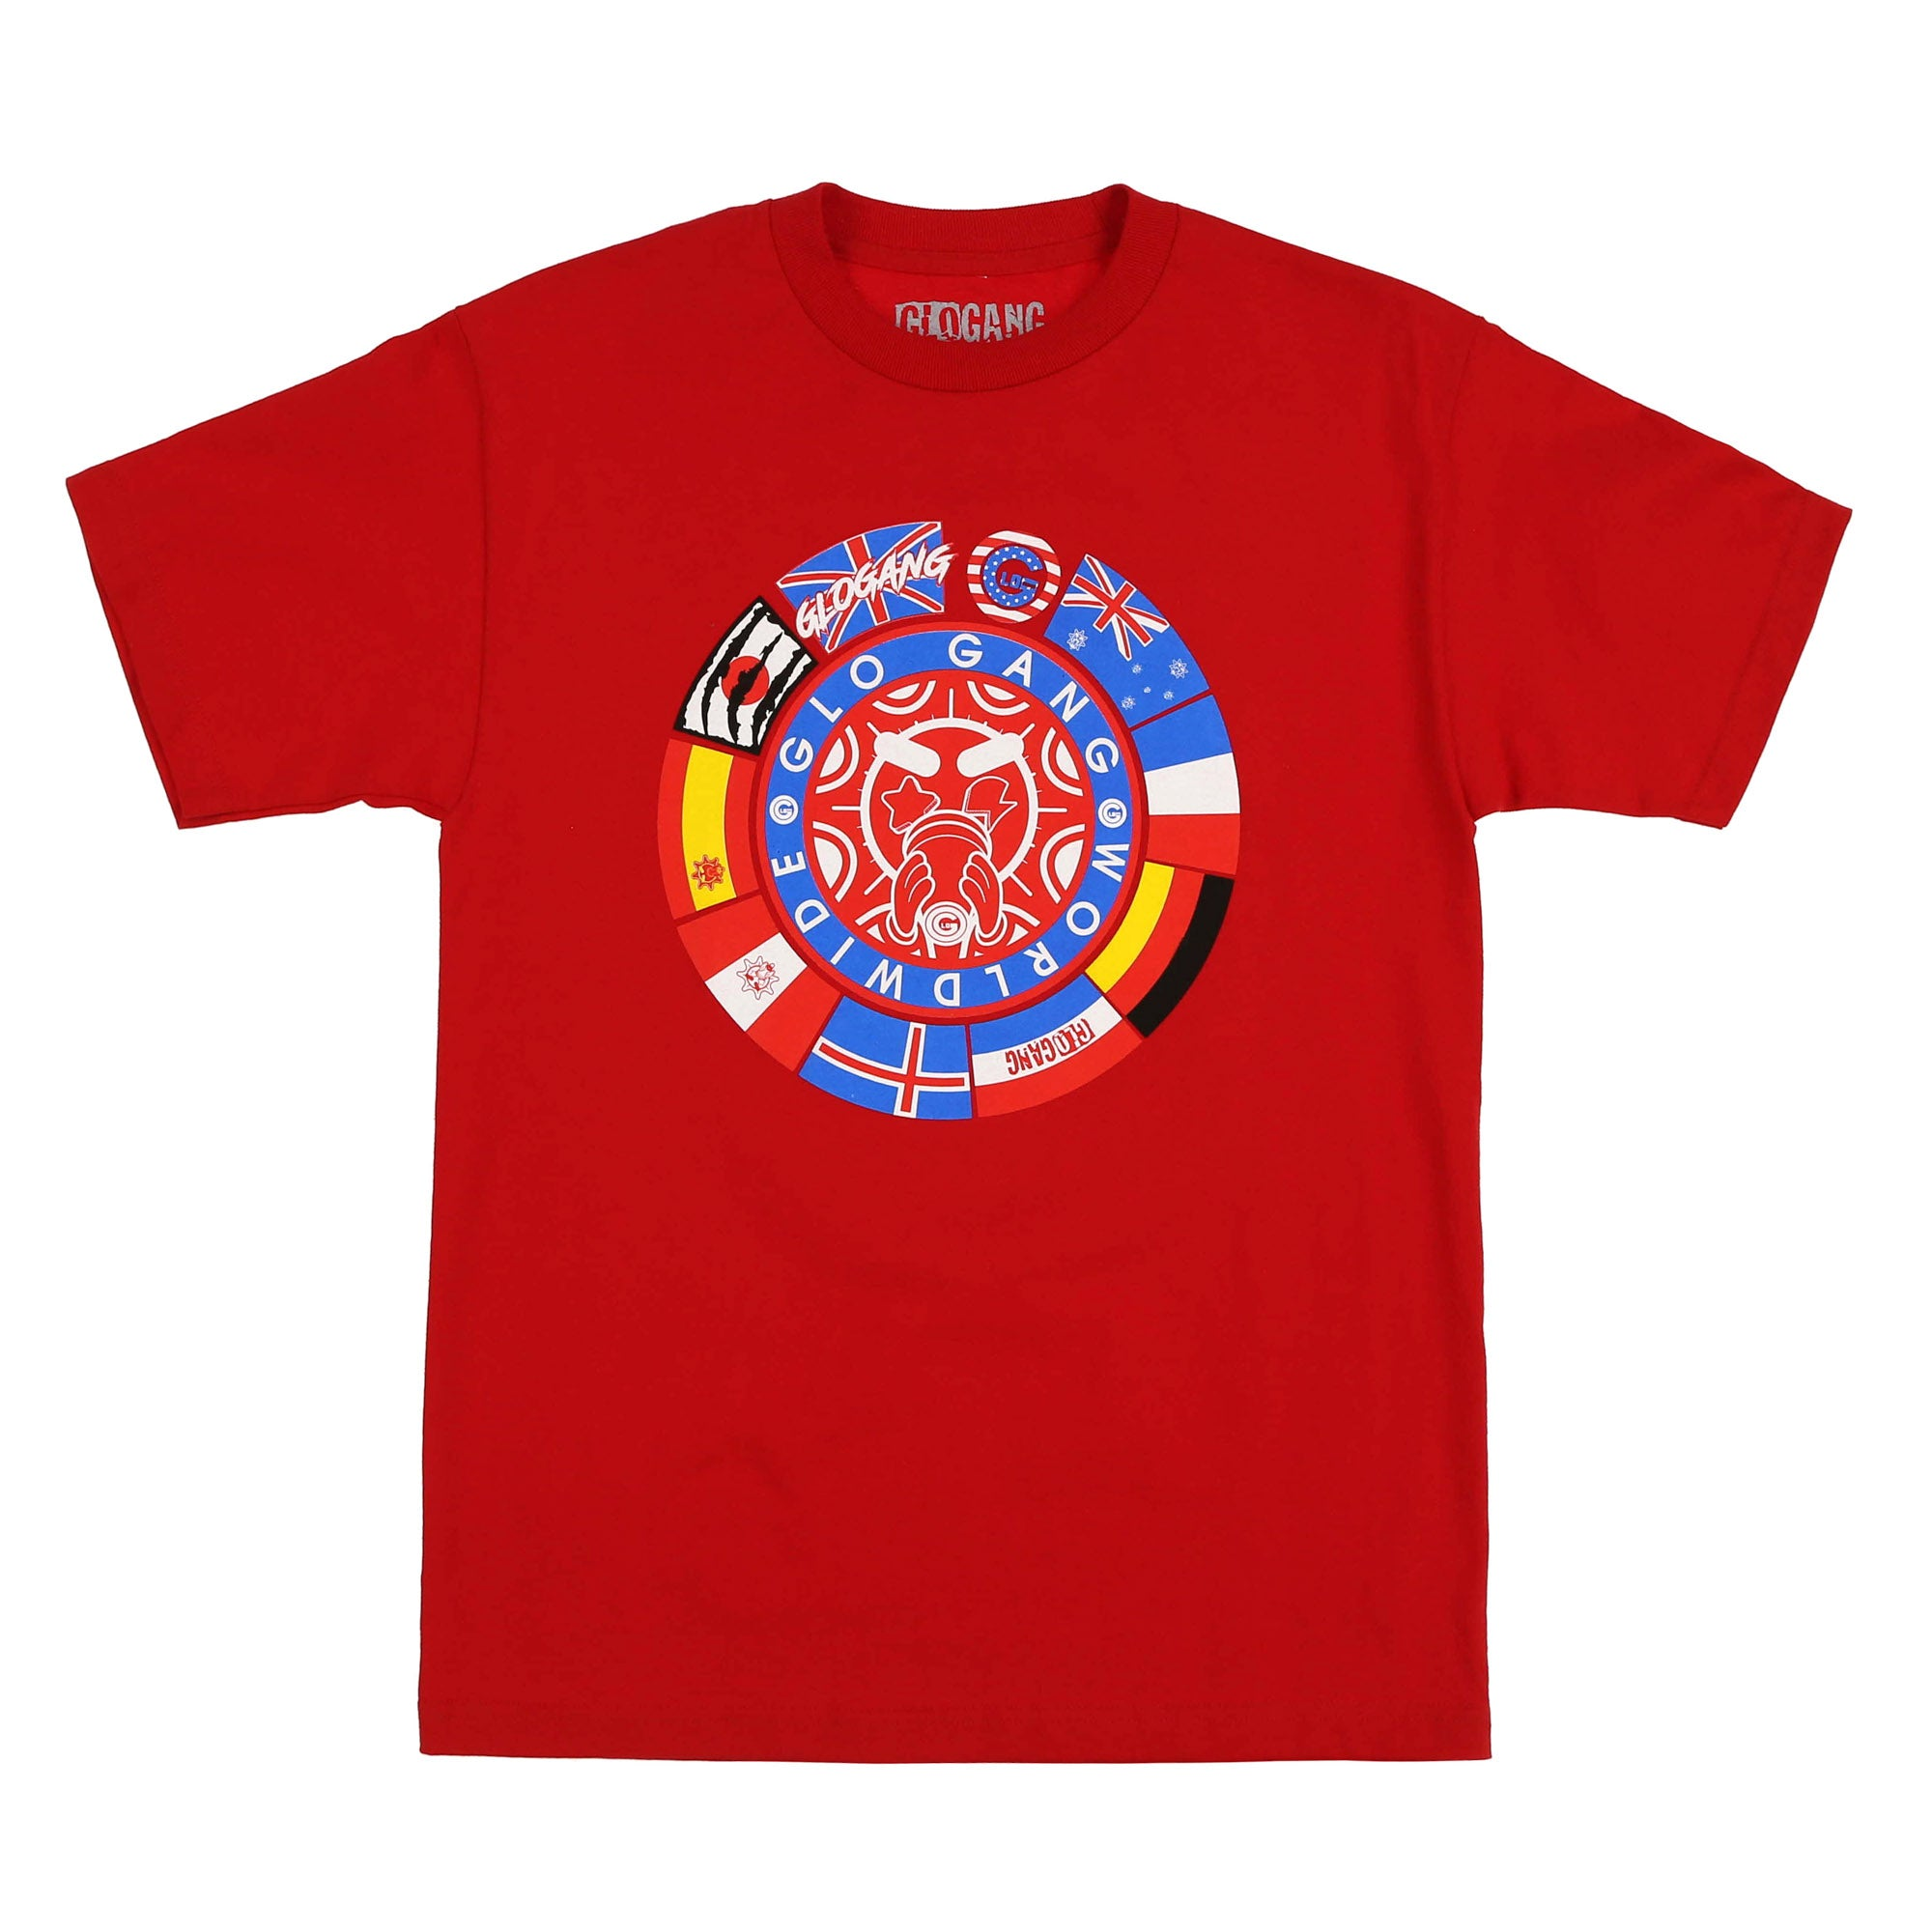 ChicaGlo Tee (Red)